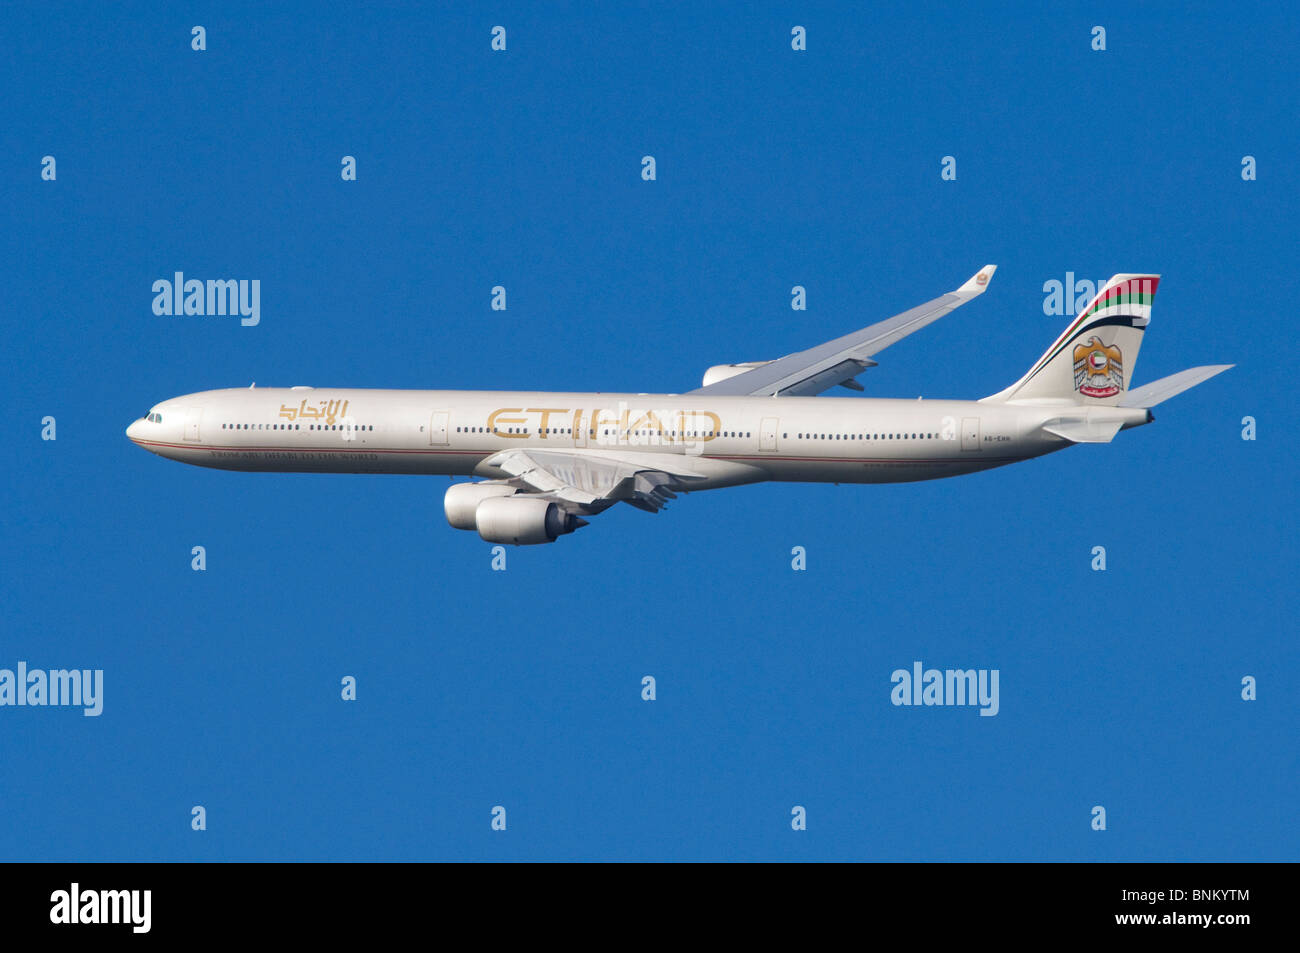 Airbus A340 operated by Etihad climbing out after take off from London Heathrow Airport, UK. - Stock Image